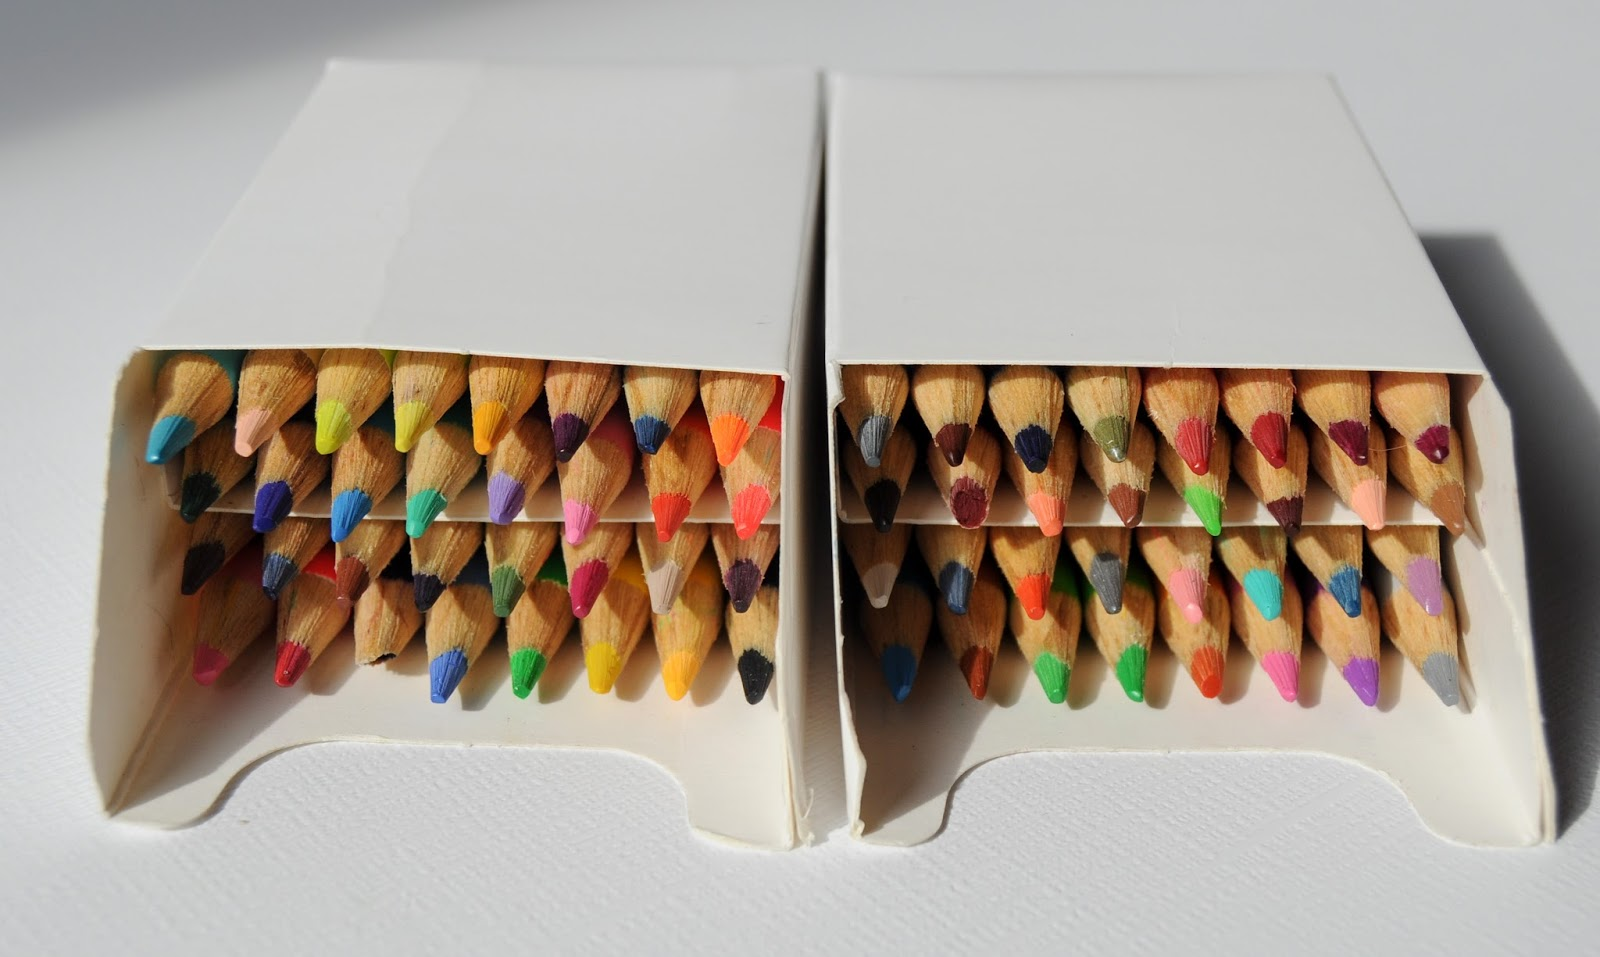 click here to find on amazon collecting information boxes 64 crayola colored pencils - Crayola Write Start Colored Pencils